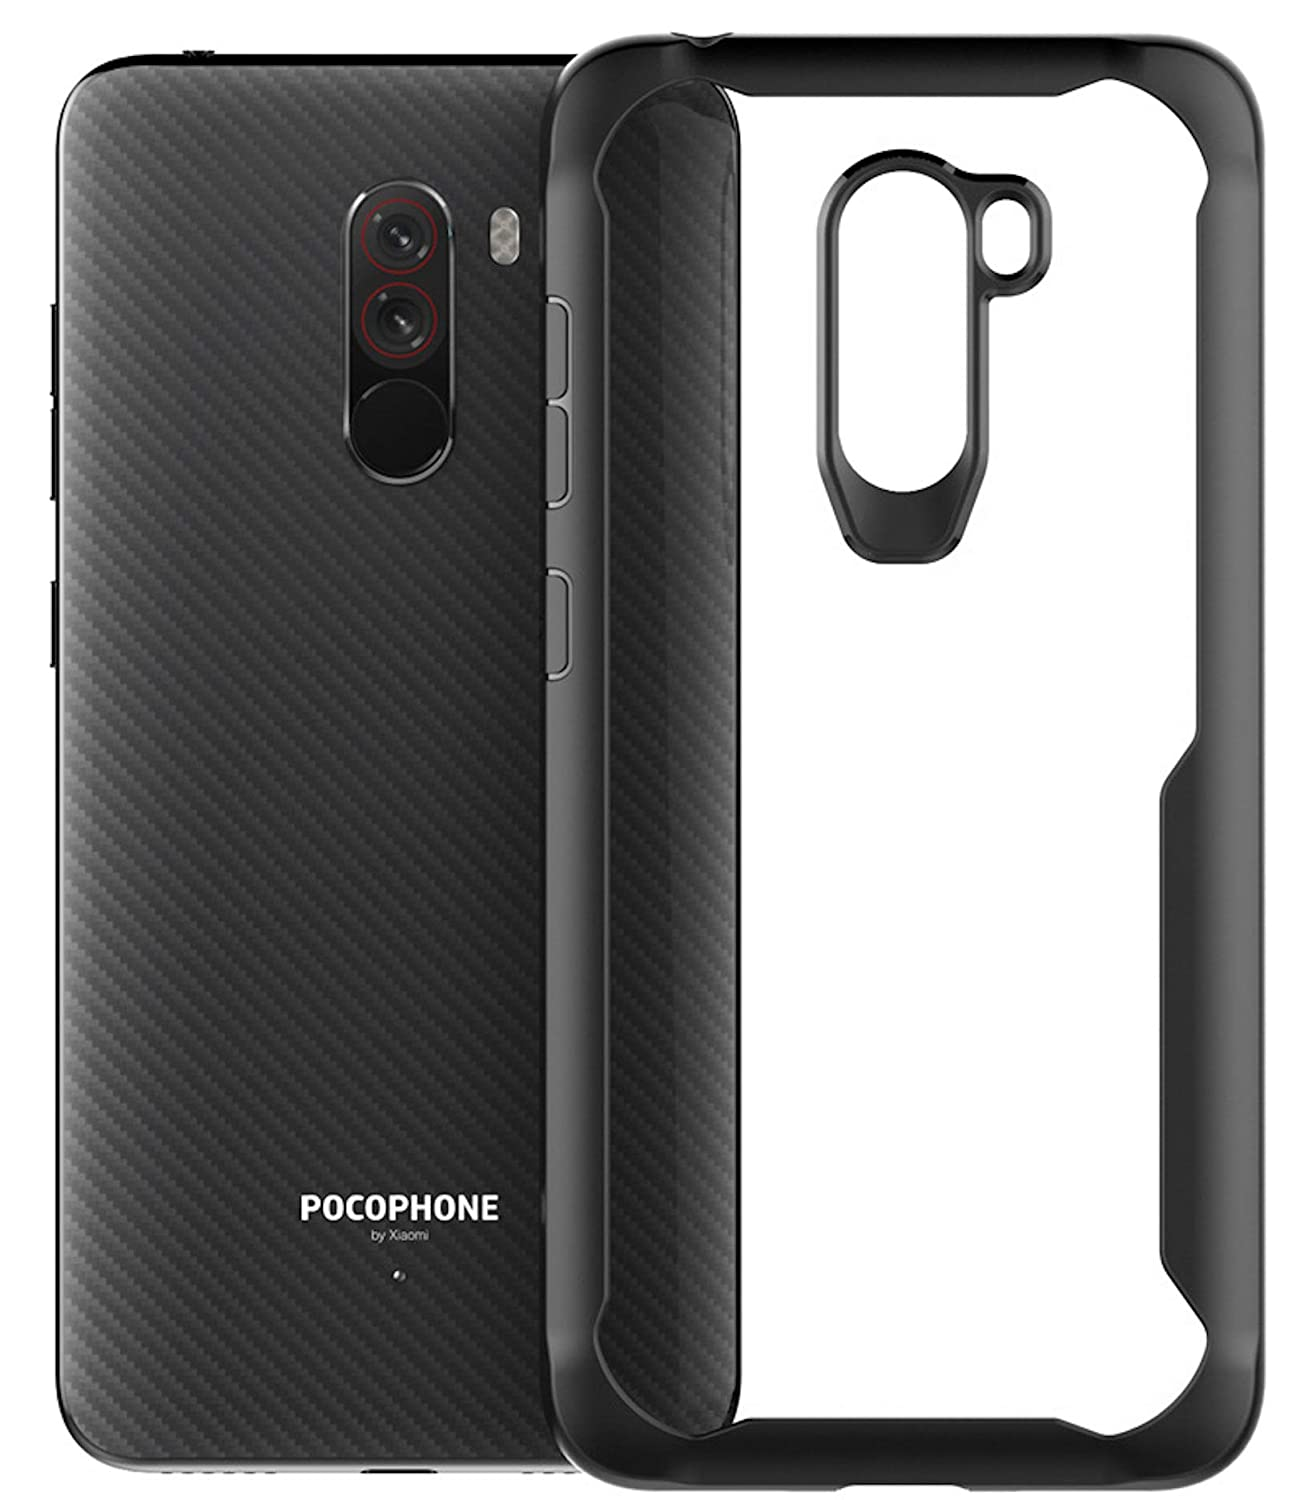 the best attitude 3f2be 6b917 Bounceback Poco F1 Cover Case Shock Proof Clear Transparent Soft TPU Back  Cover Case for Poco F1 - Charcoal Black